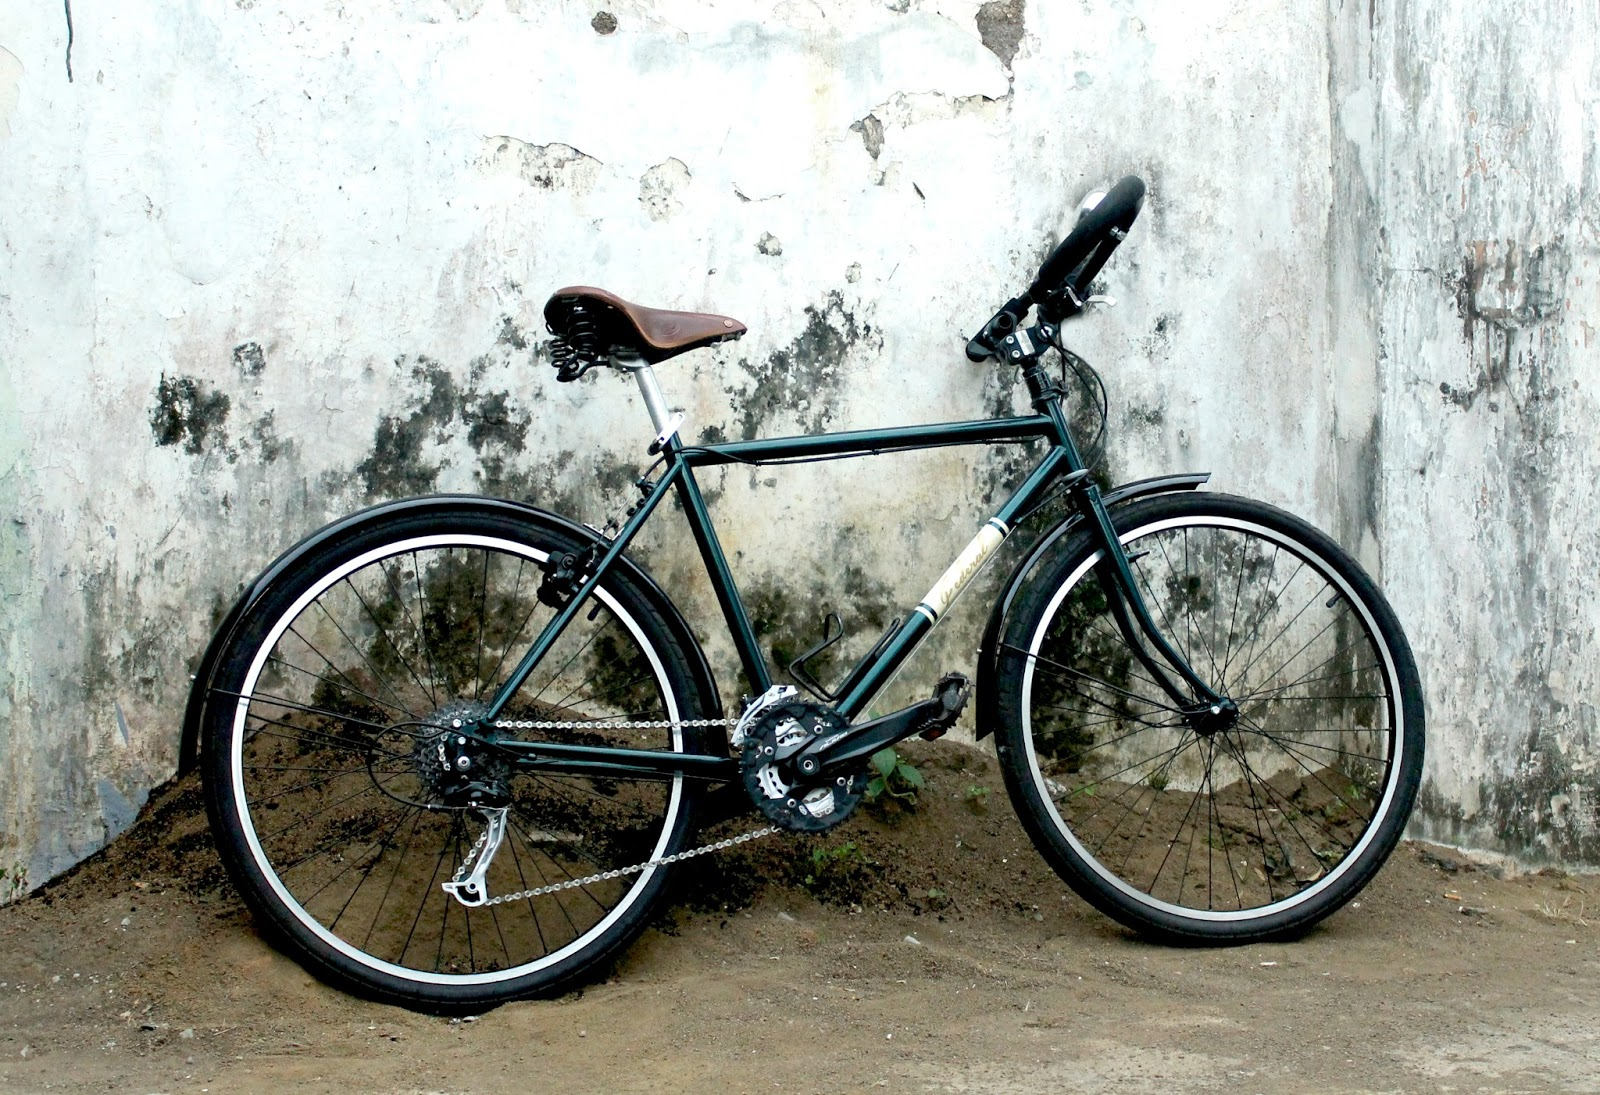 BENGKEL CAT SEPEDA: Federal Alley Cat, Touring